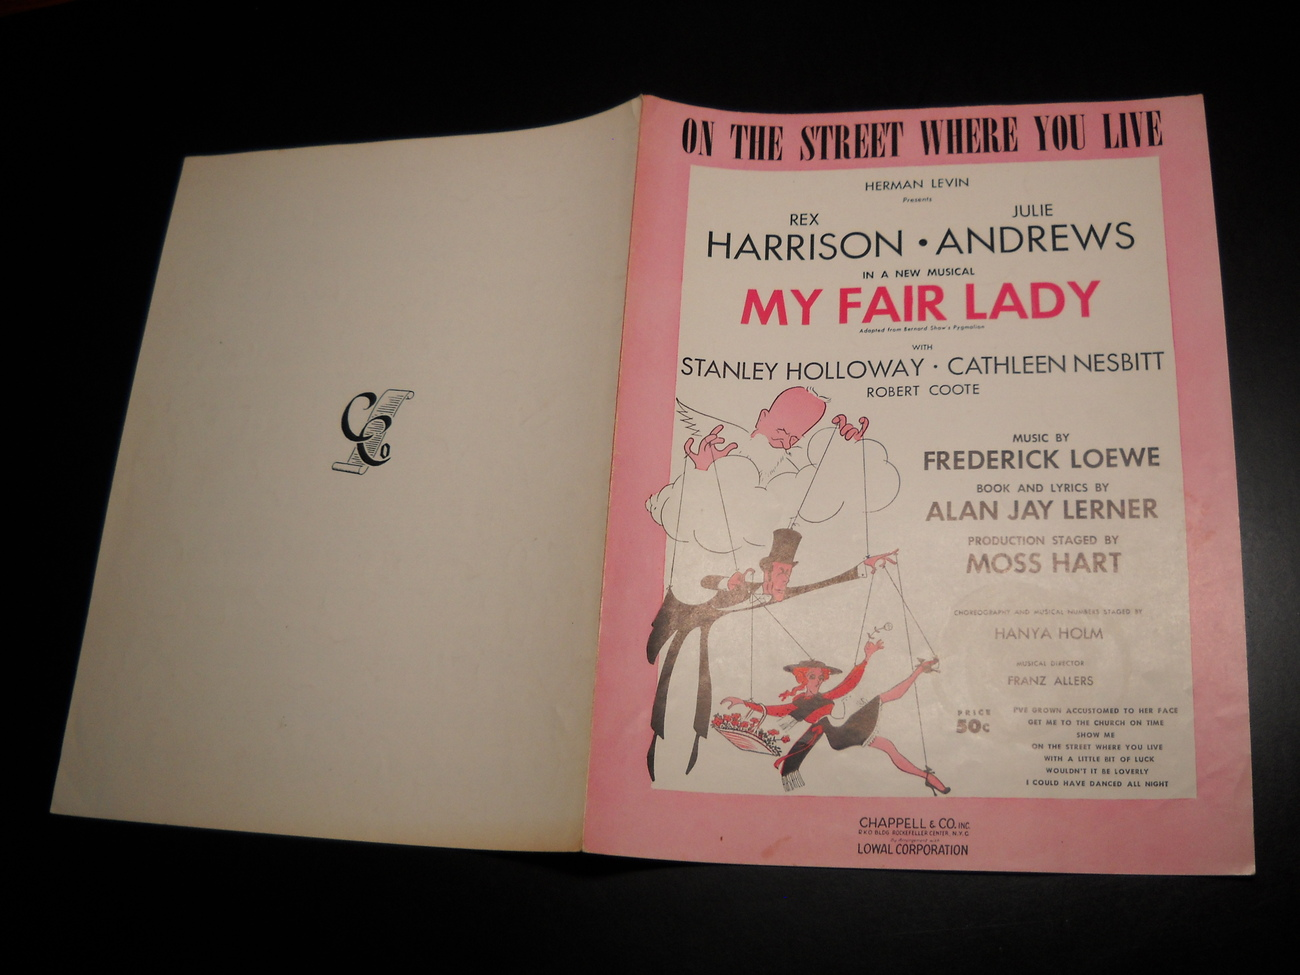 Sheet_music_on_the_street_where_you_live_my_fair_lady_harrison_andrews_1956_lerner_loewe_chappell_music_04